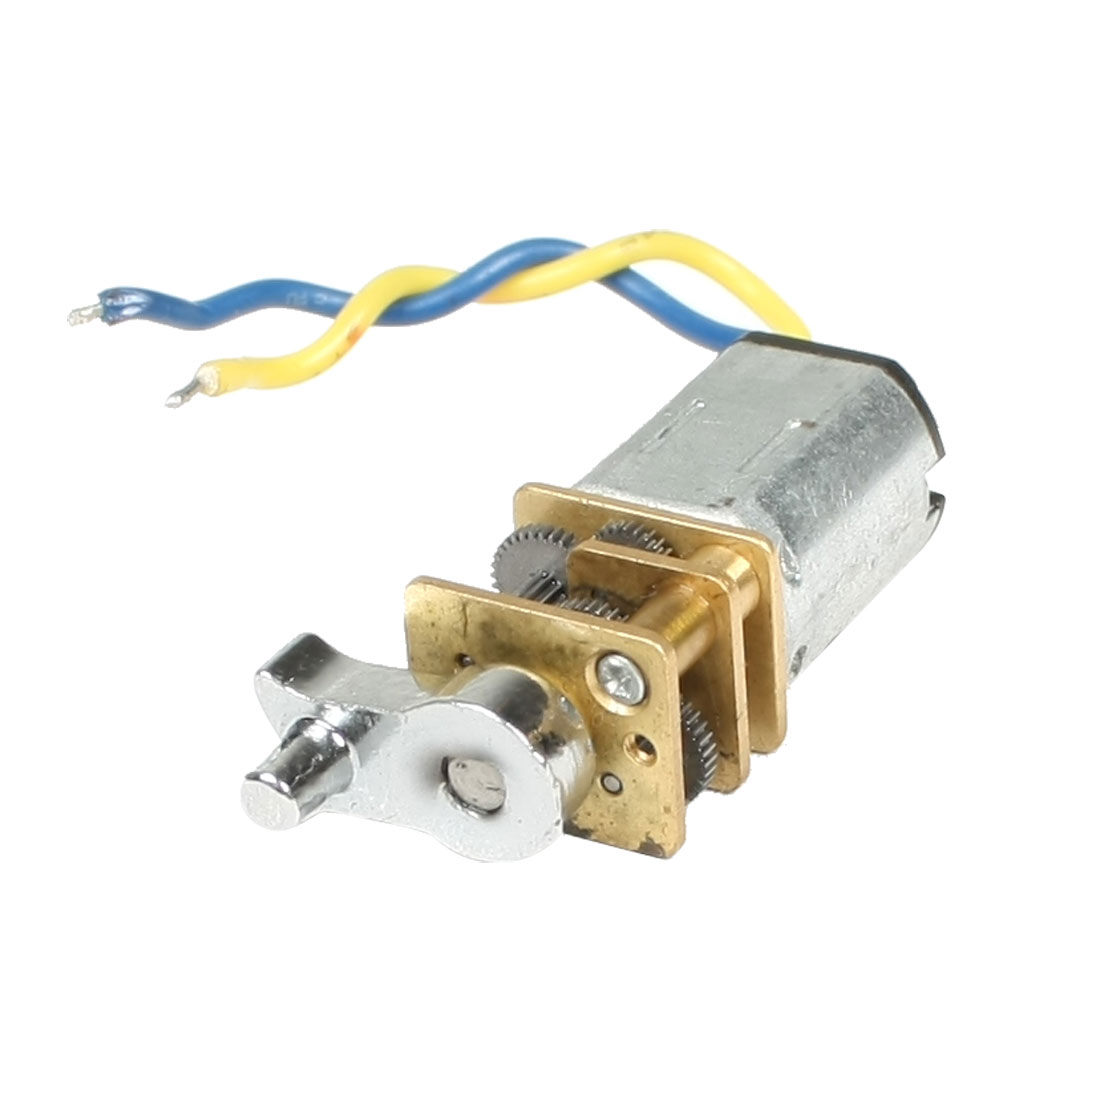 DC-12V-40RPM-Rotary-Speed-Flat-Shape-Electric-Mini-Gear-Motor-N30